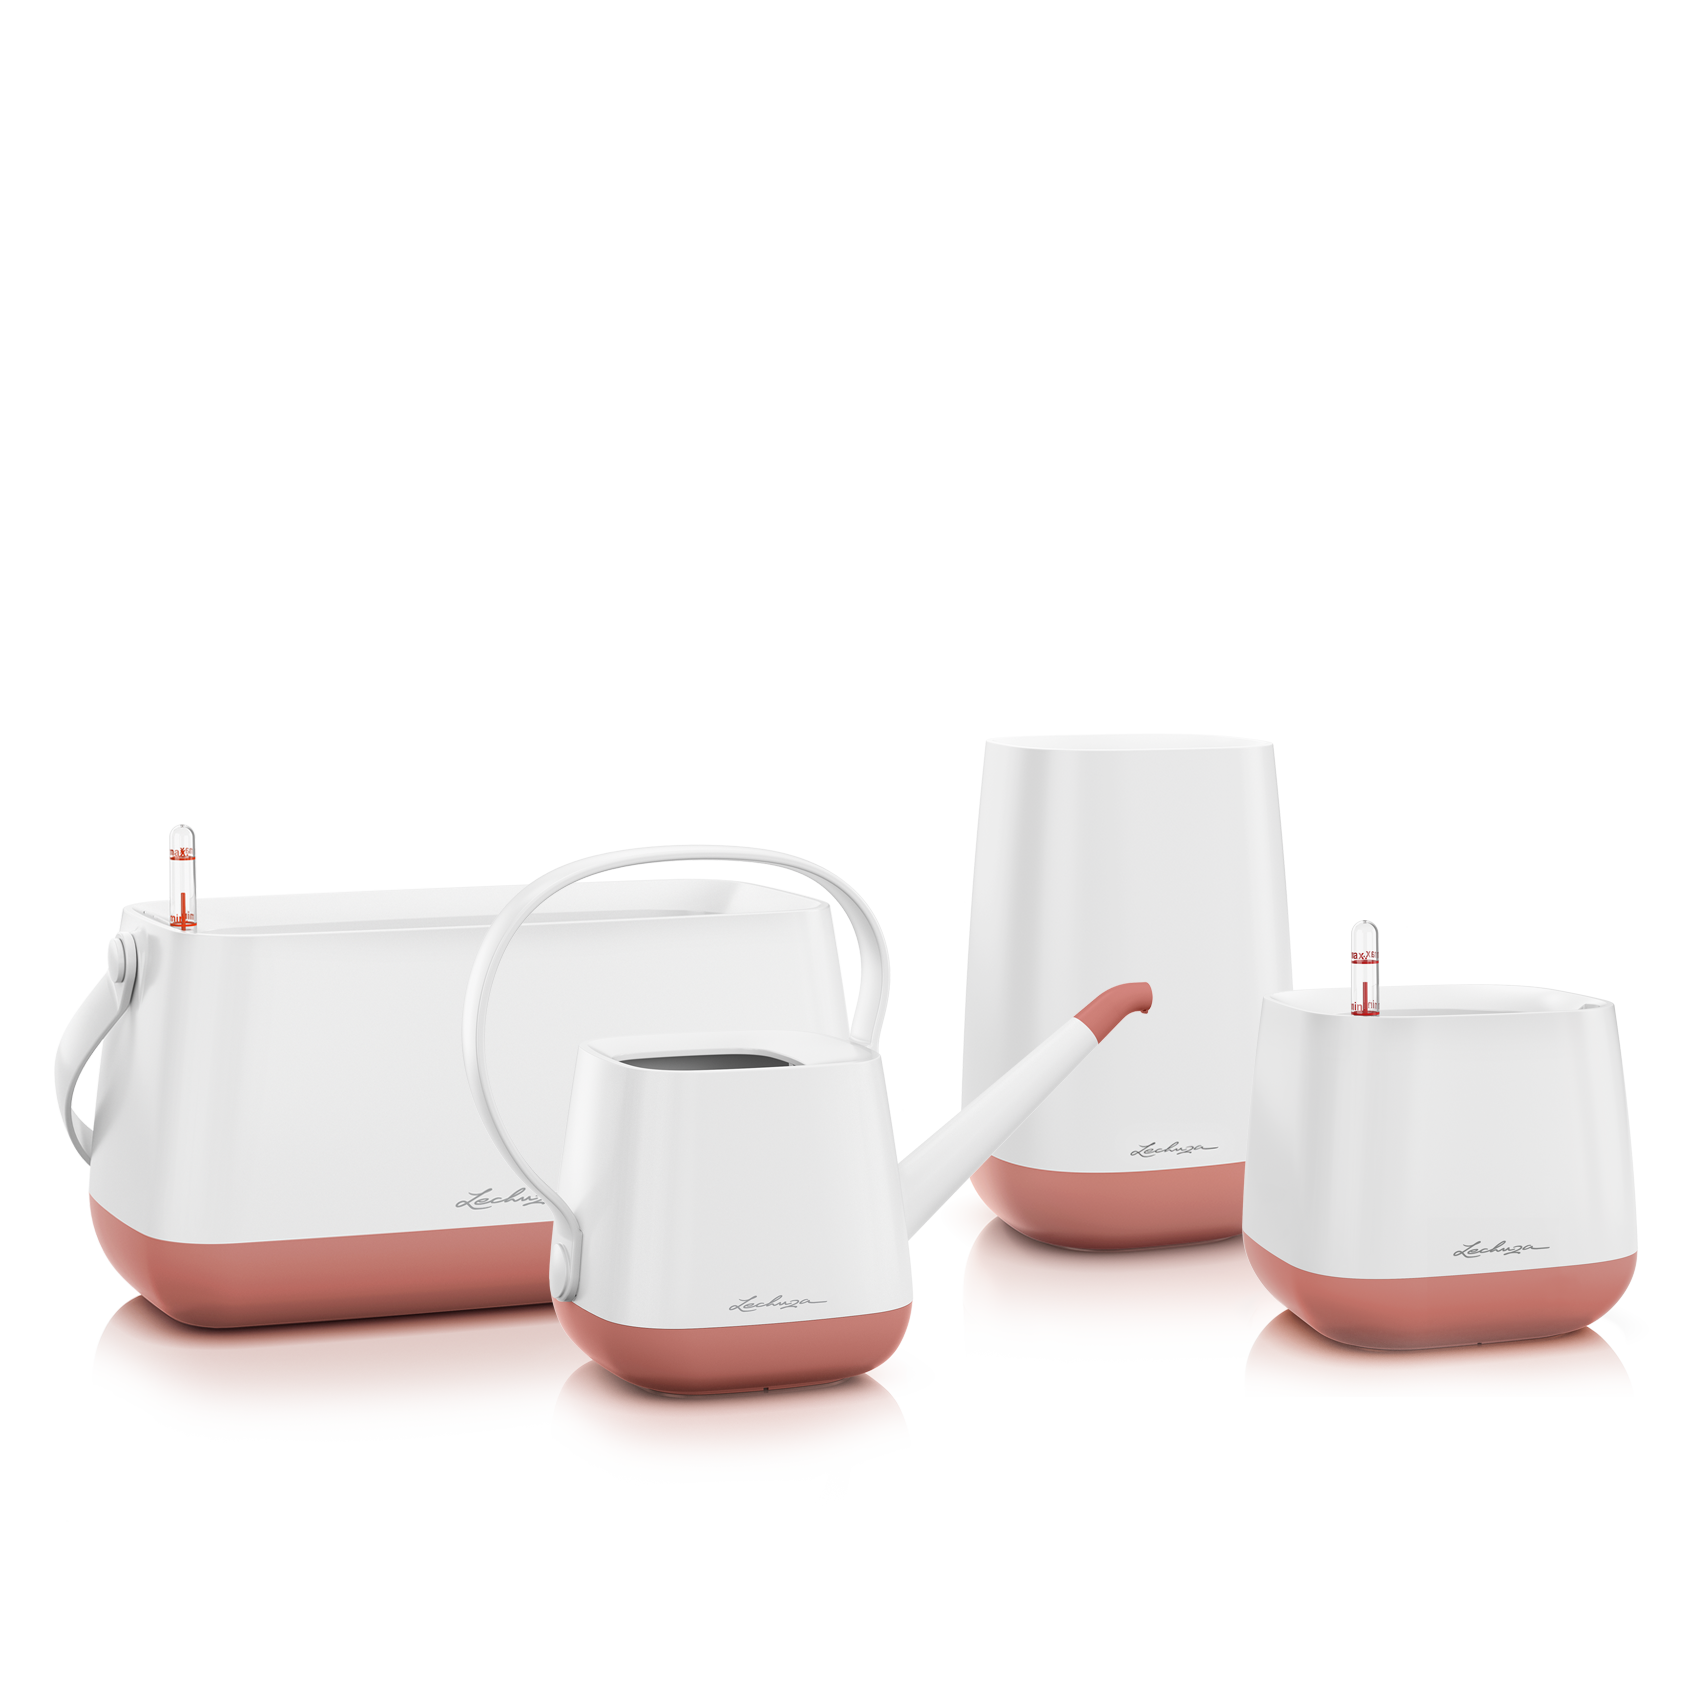 YULA set white/pearl rose semi-gloss